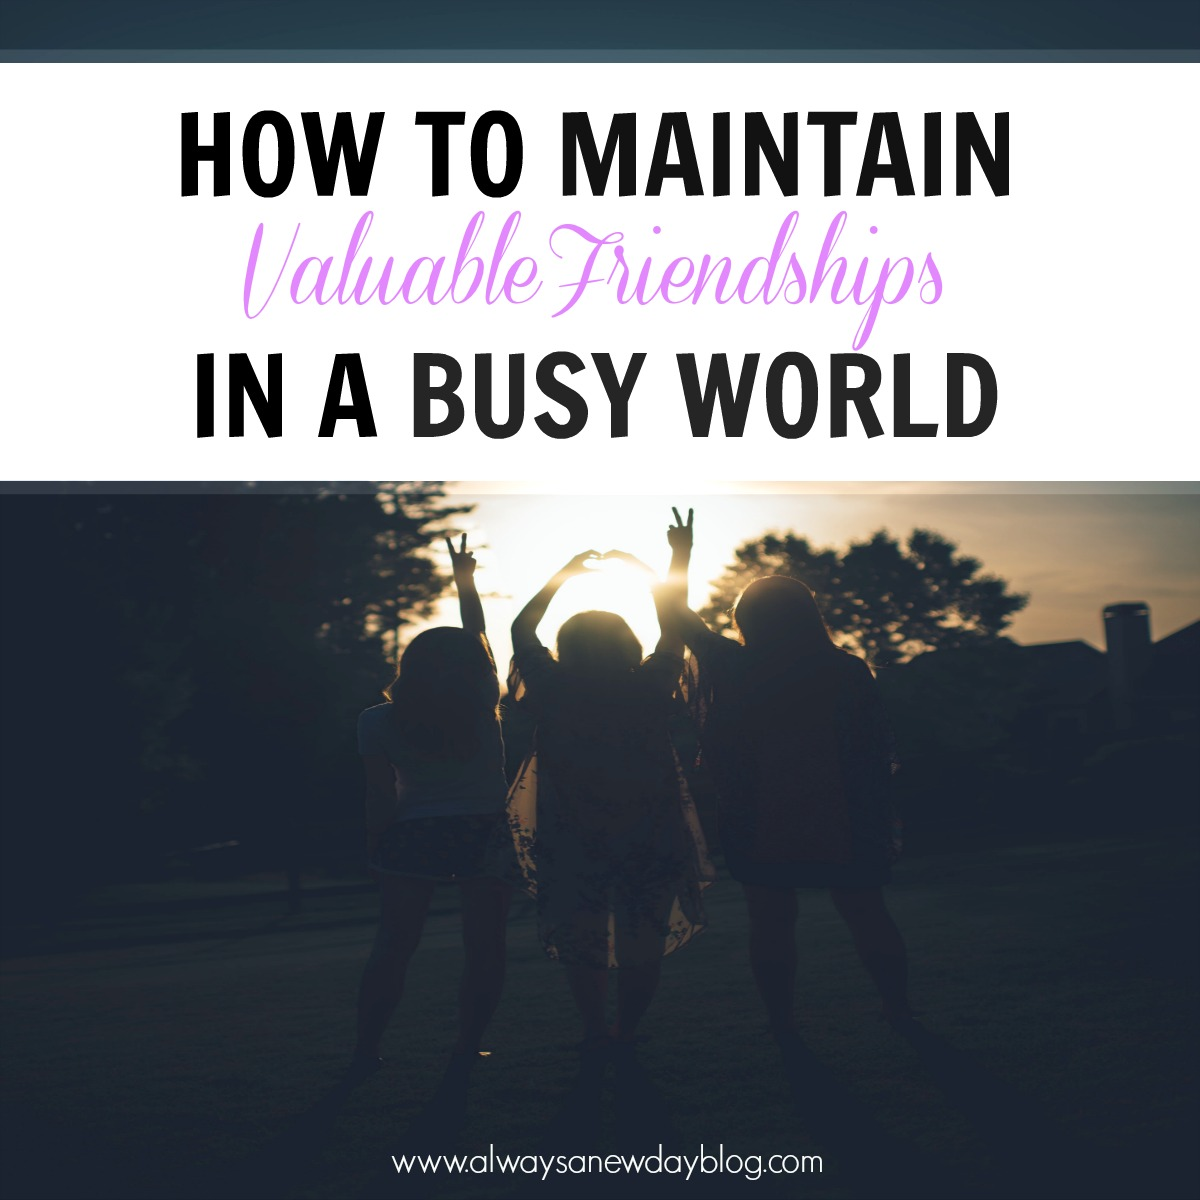 how to maintain friendship Some useless information about how to maintain friendships, stories about weddings, monkeys and lots of other useless things in today's episode but there is some useful rnr vocabulary as always just like this.